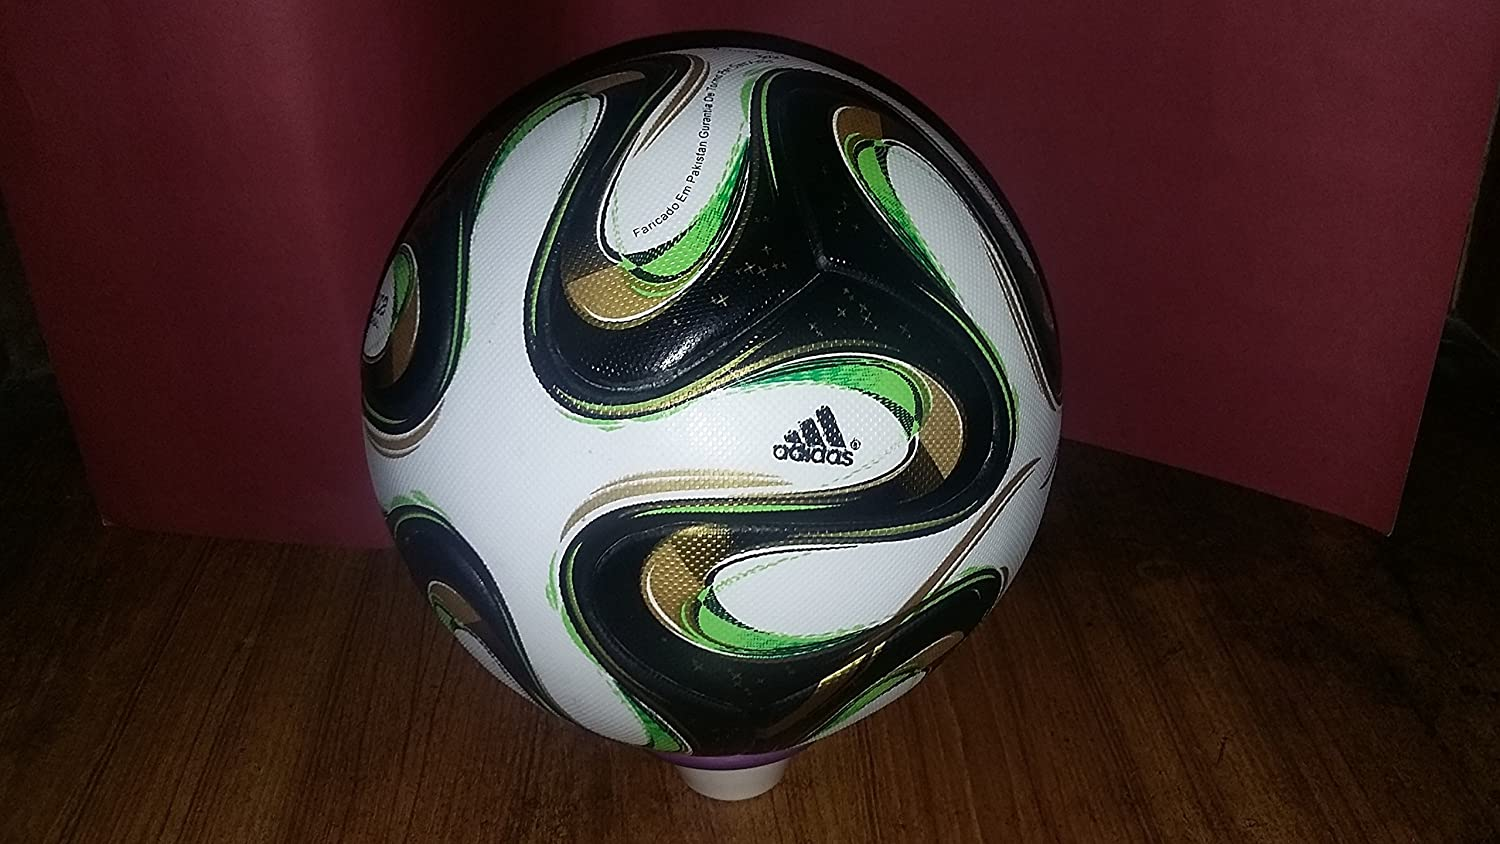 adidas 2014 FIFA World Cup Brazuca Final Rio Match Ball Replica Top Glider Size 5 steba vk 28х40 пакет для вакуумного упаковщика